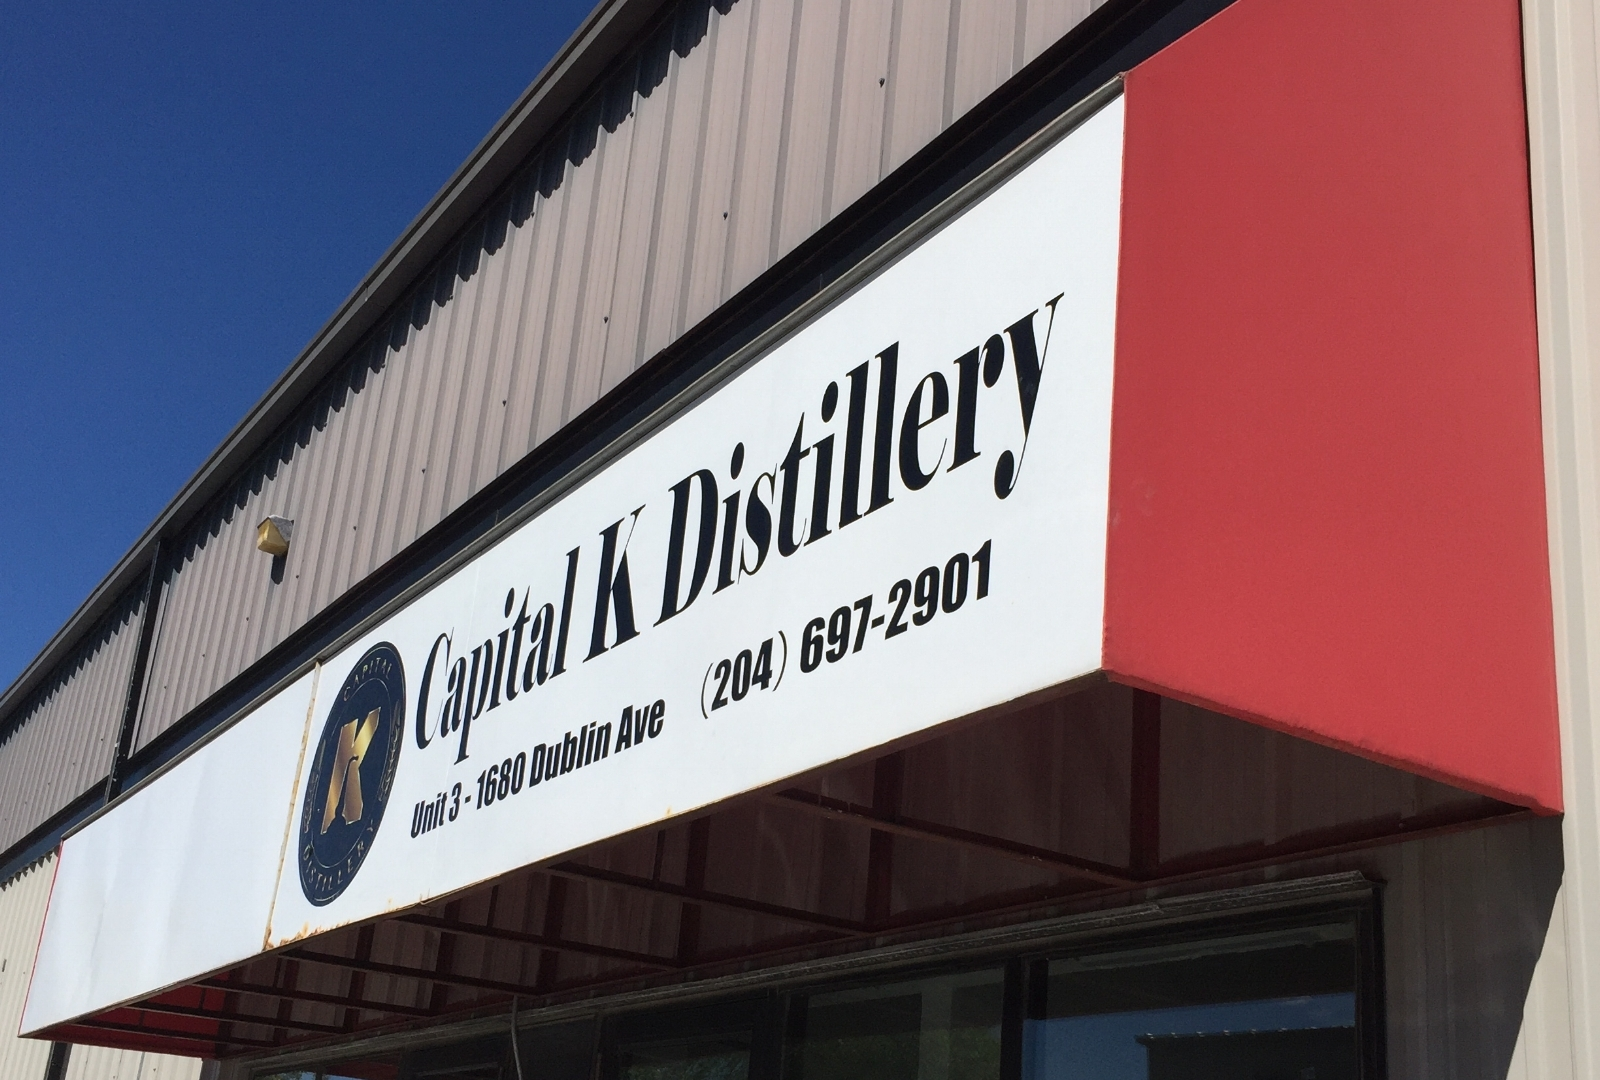 Capital K Micro Distillery - The first Micro Distillery in Manitoba…